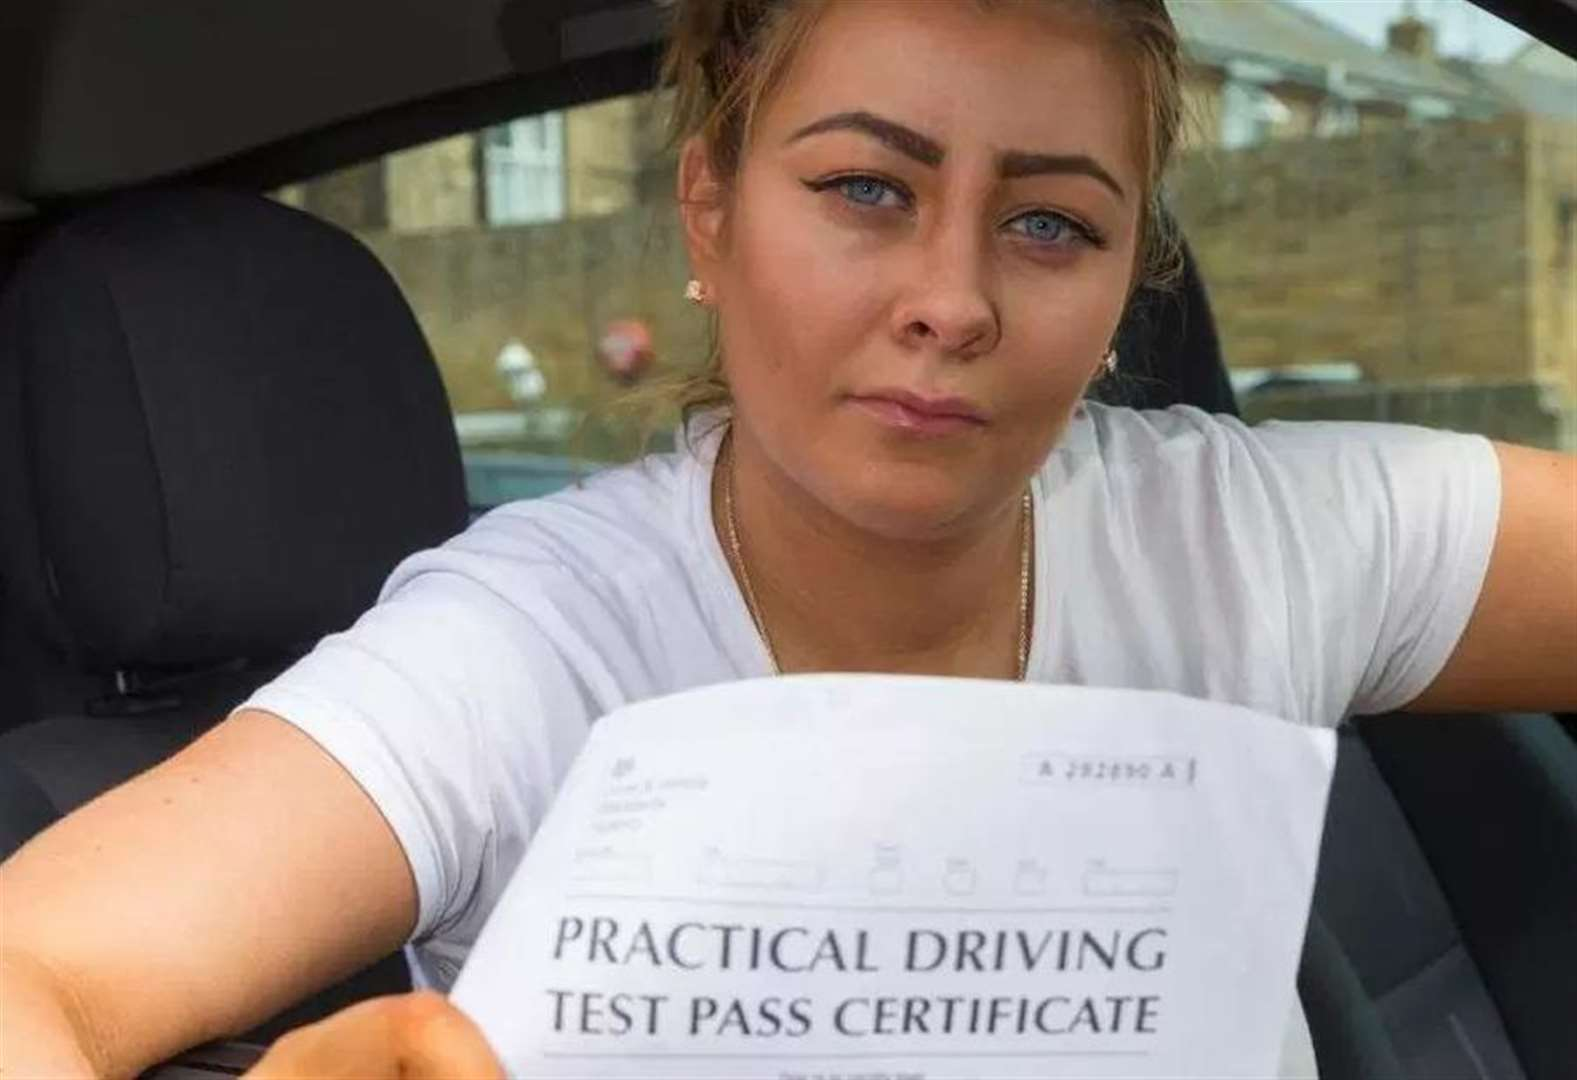 Mum fails driving test one day after 'passing'